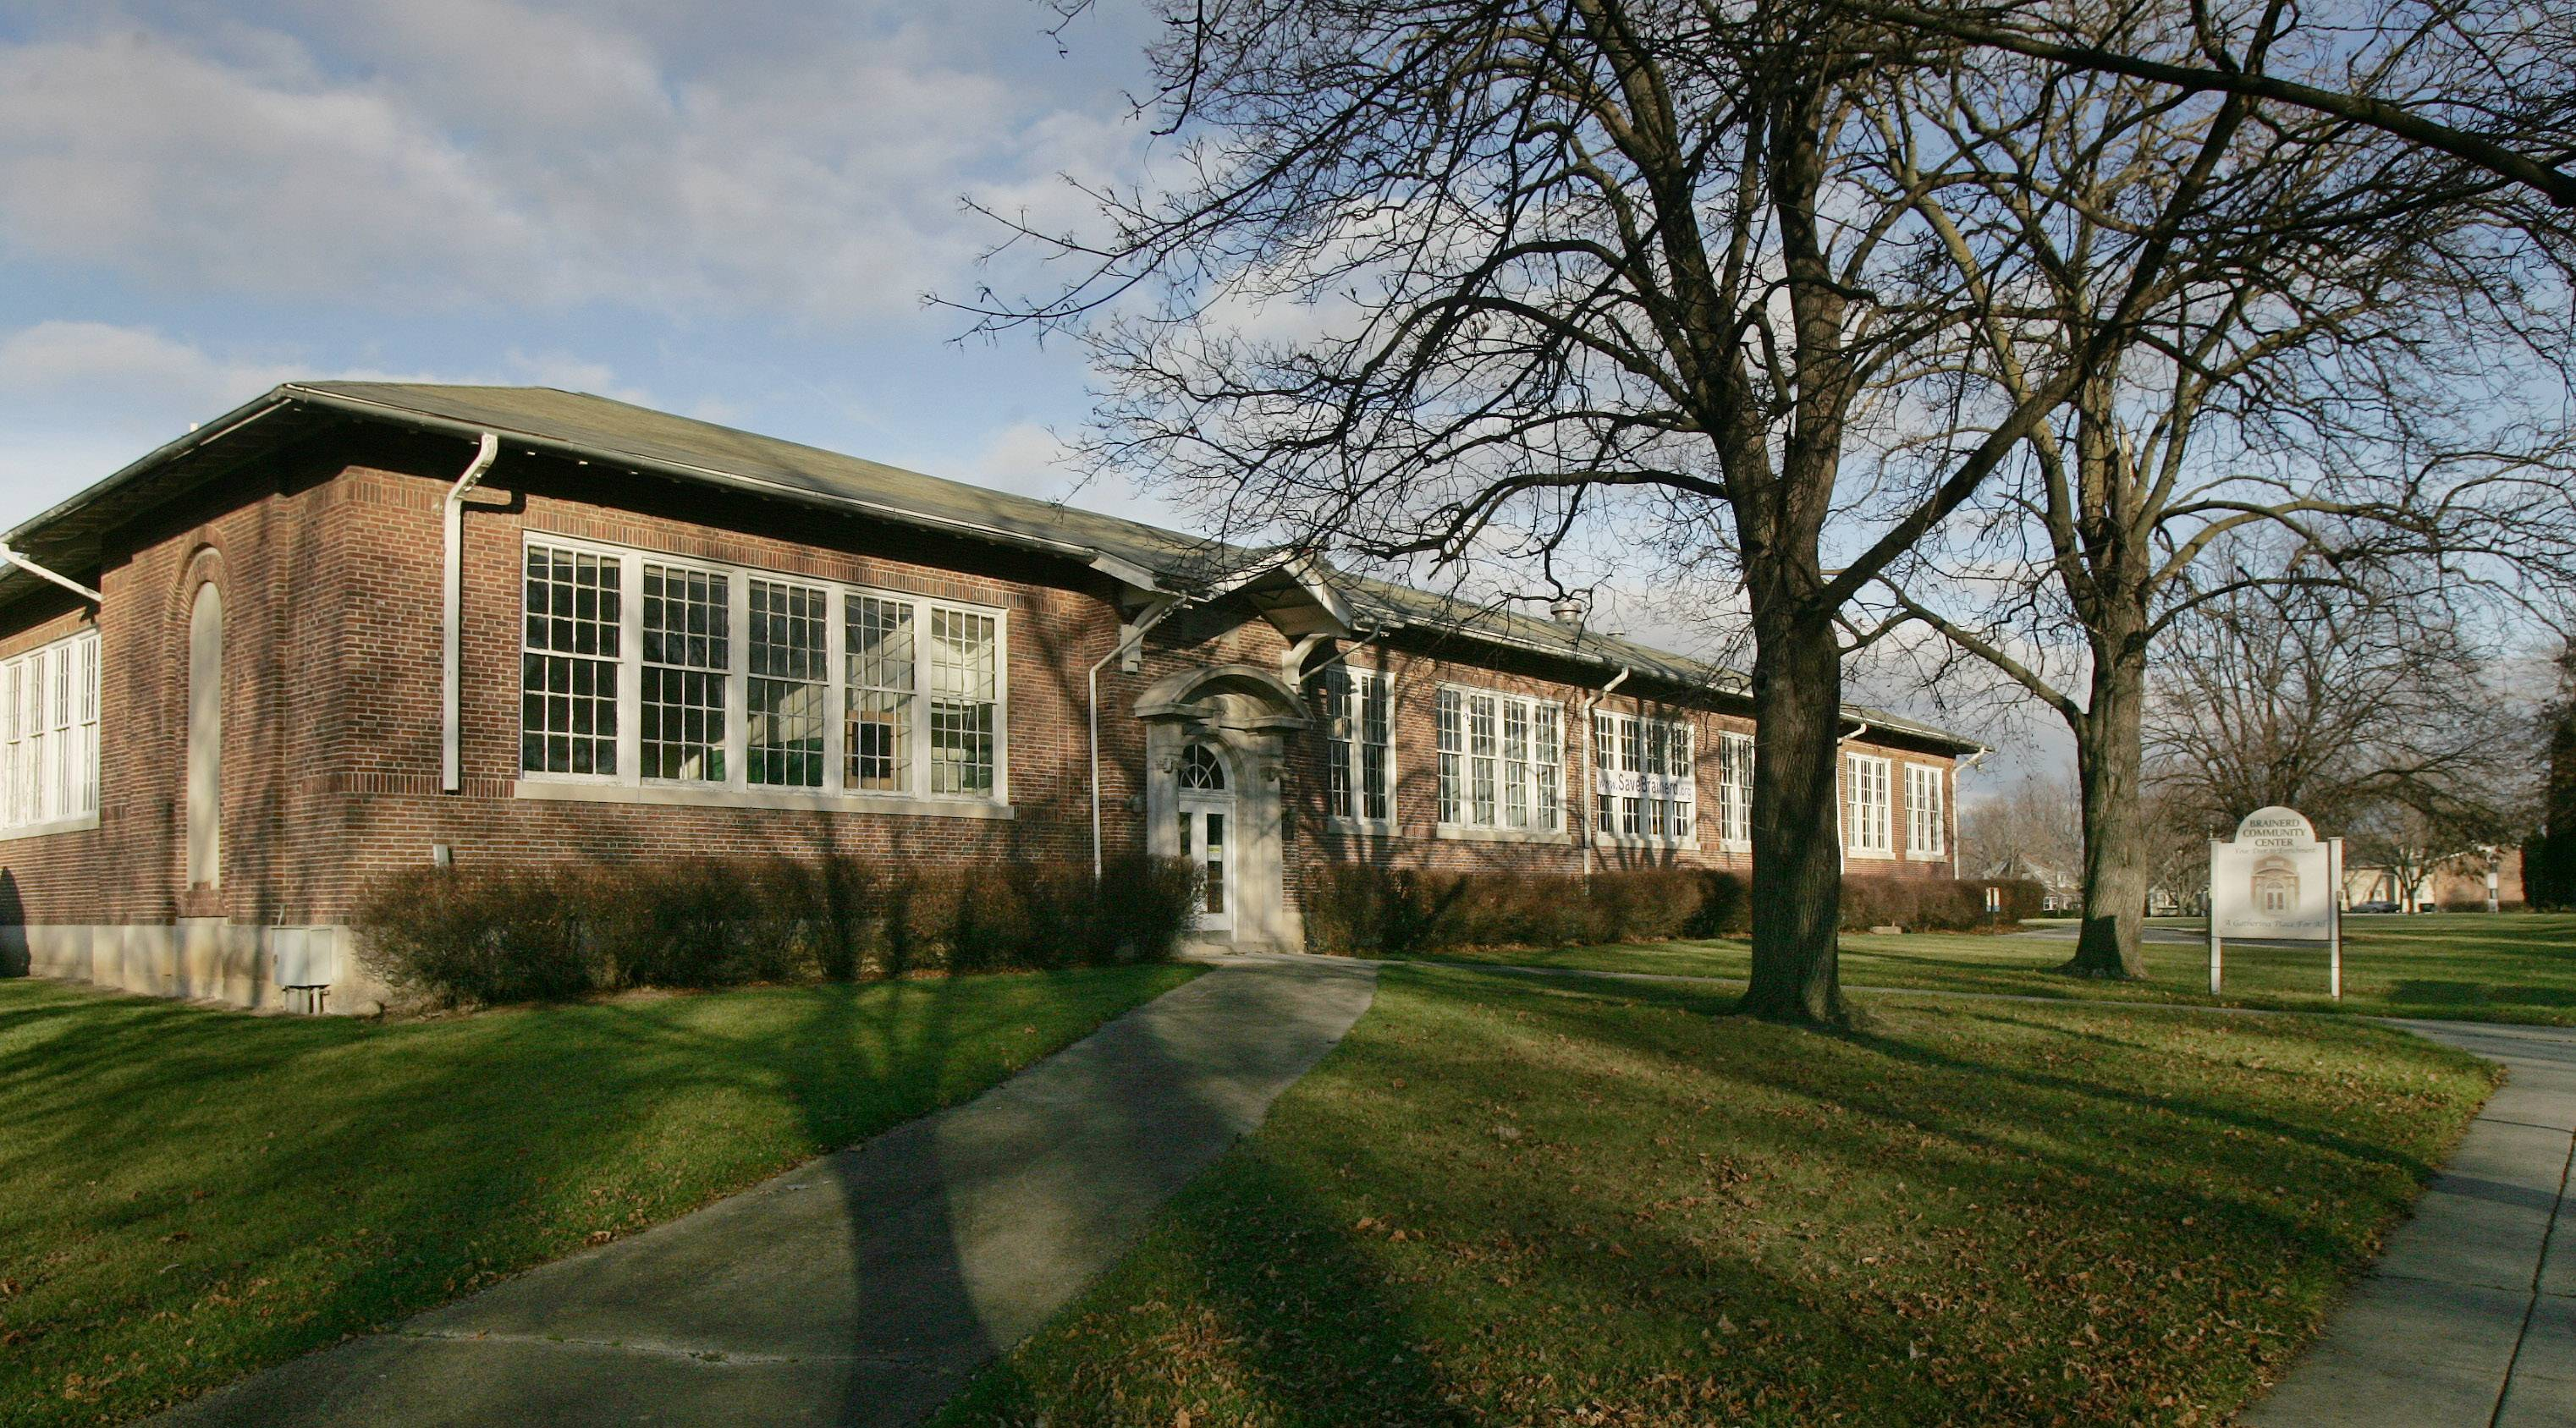 The former Brainerd Building, which opened as Libertyville Township High School in 1917, is headed for demolition. So is the adjoining Jackson Gym.